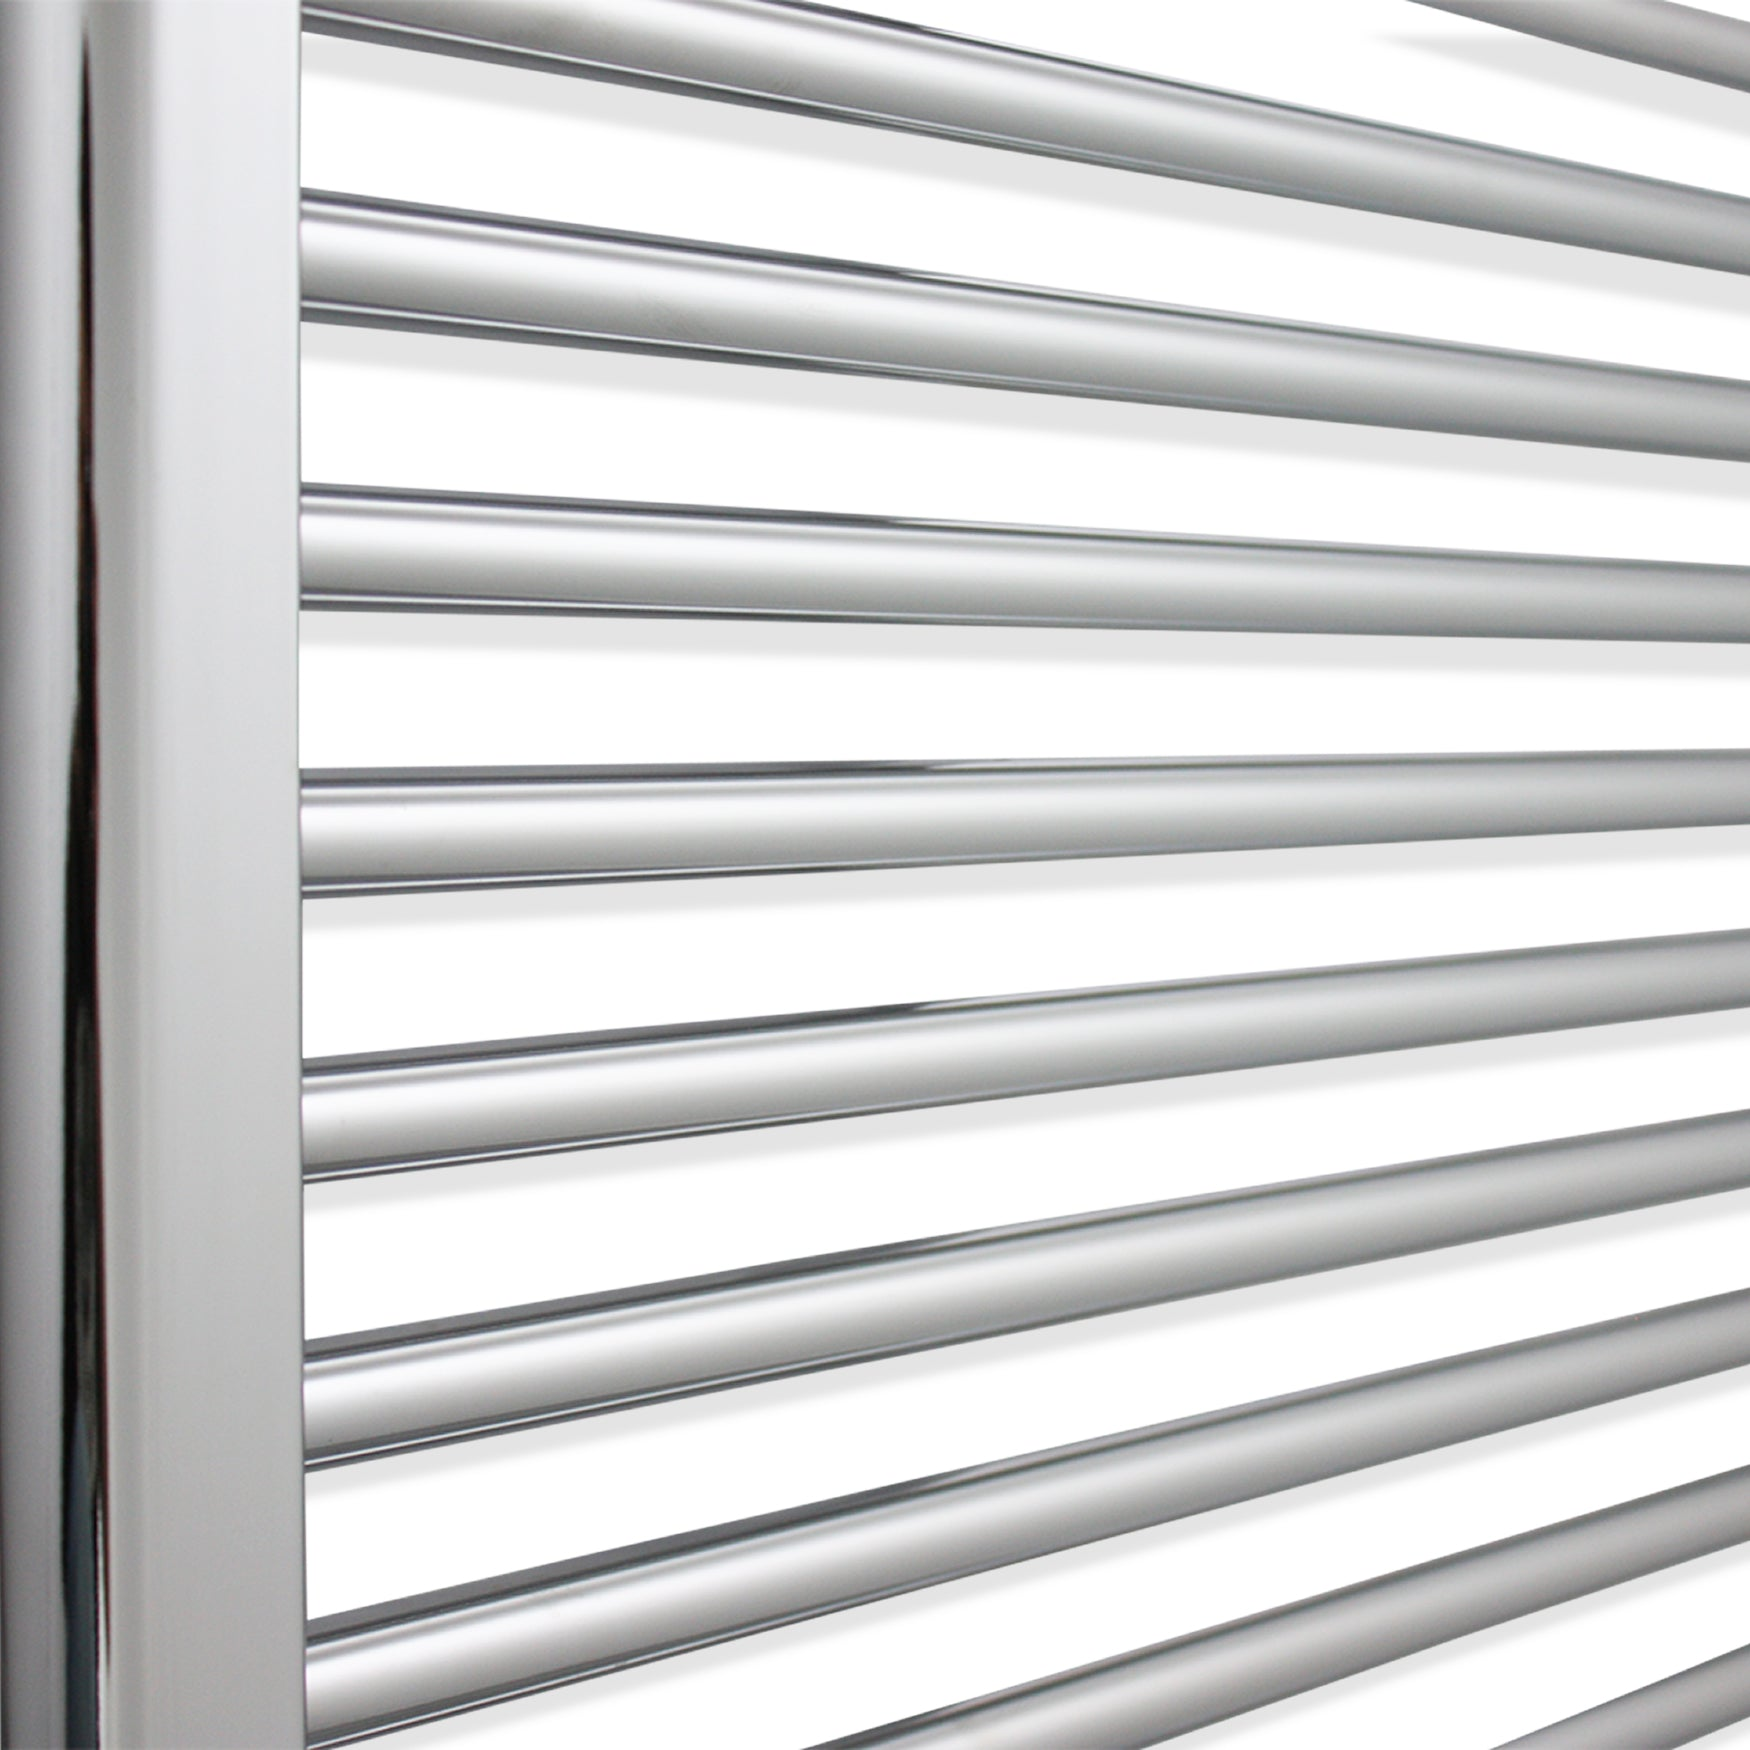 600mm Wide 800mm High Flat Chrome Heated Towel Rail Radiator HTR